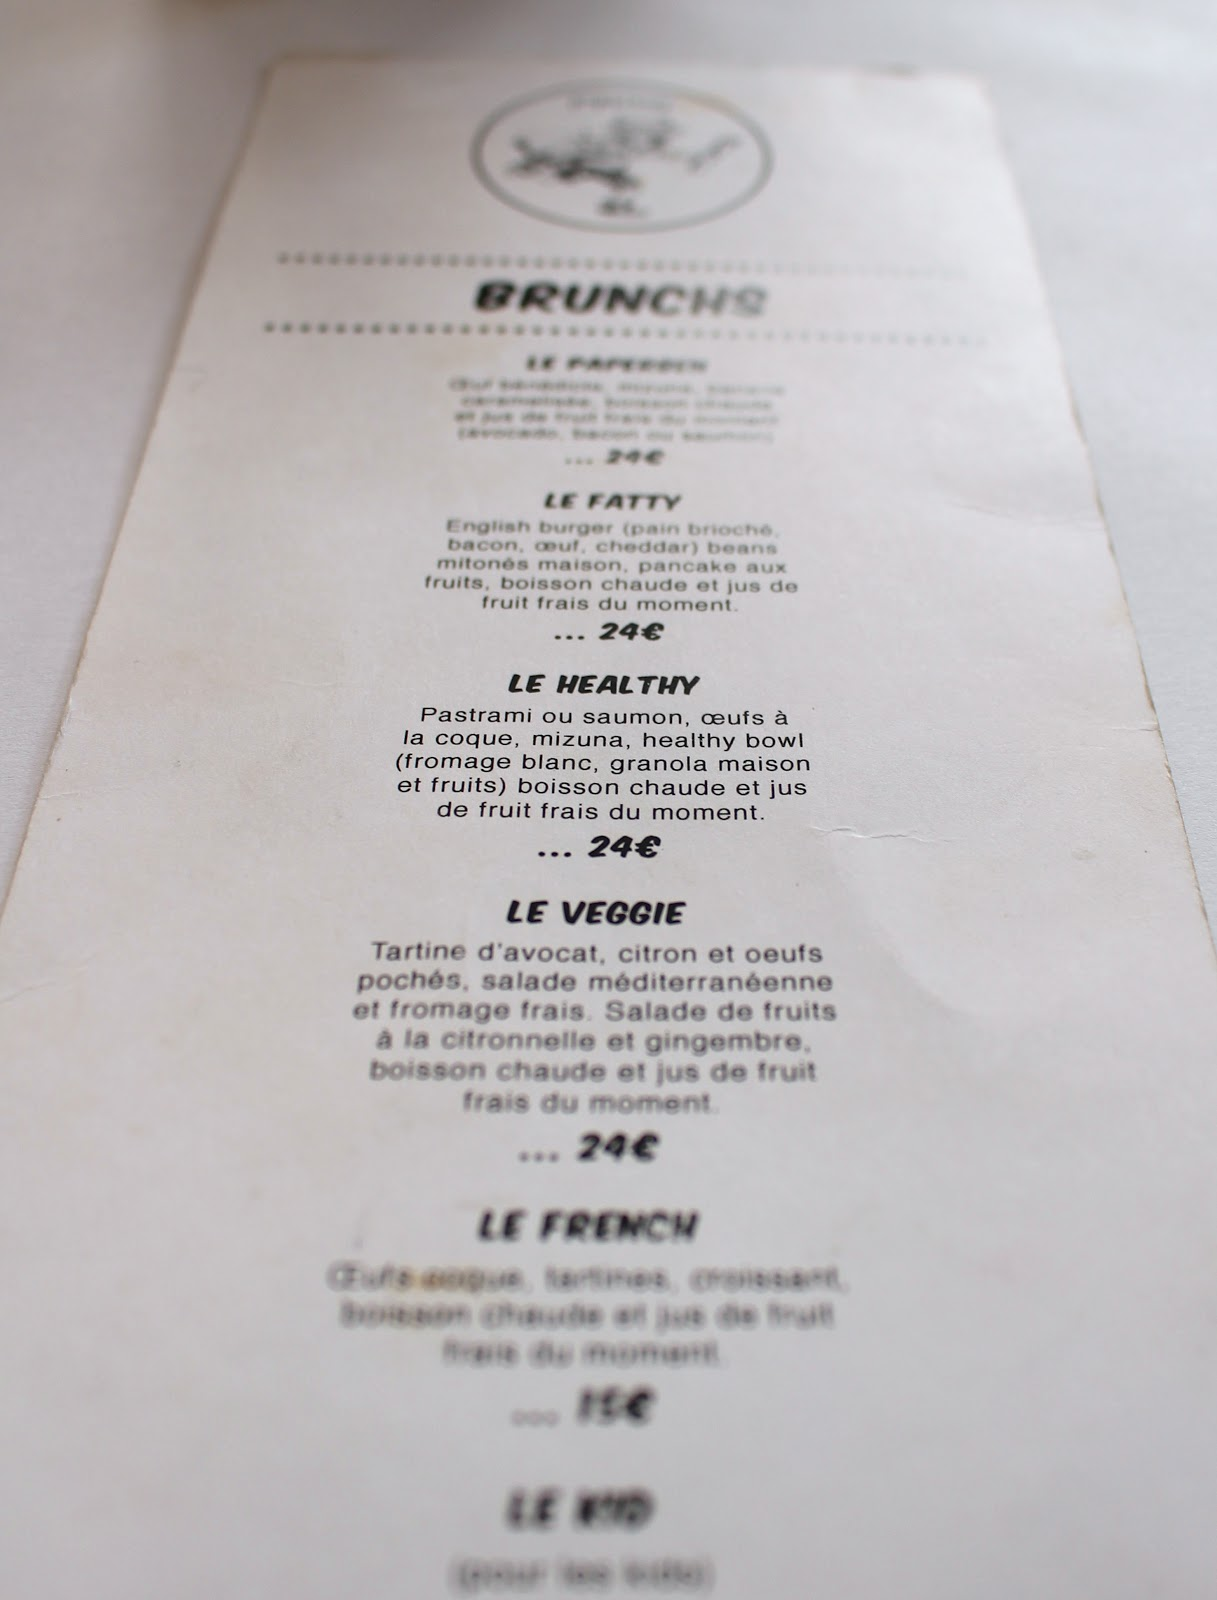 Paperboy | Paris brunch menu